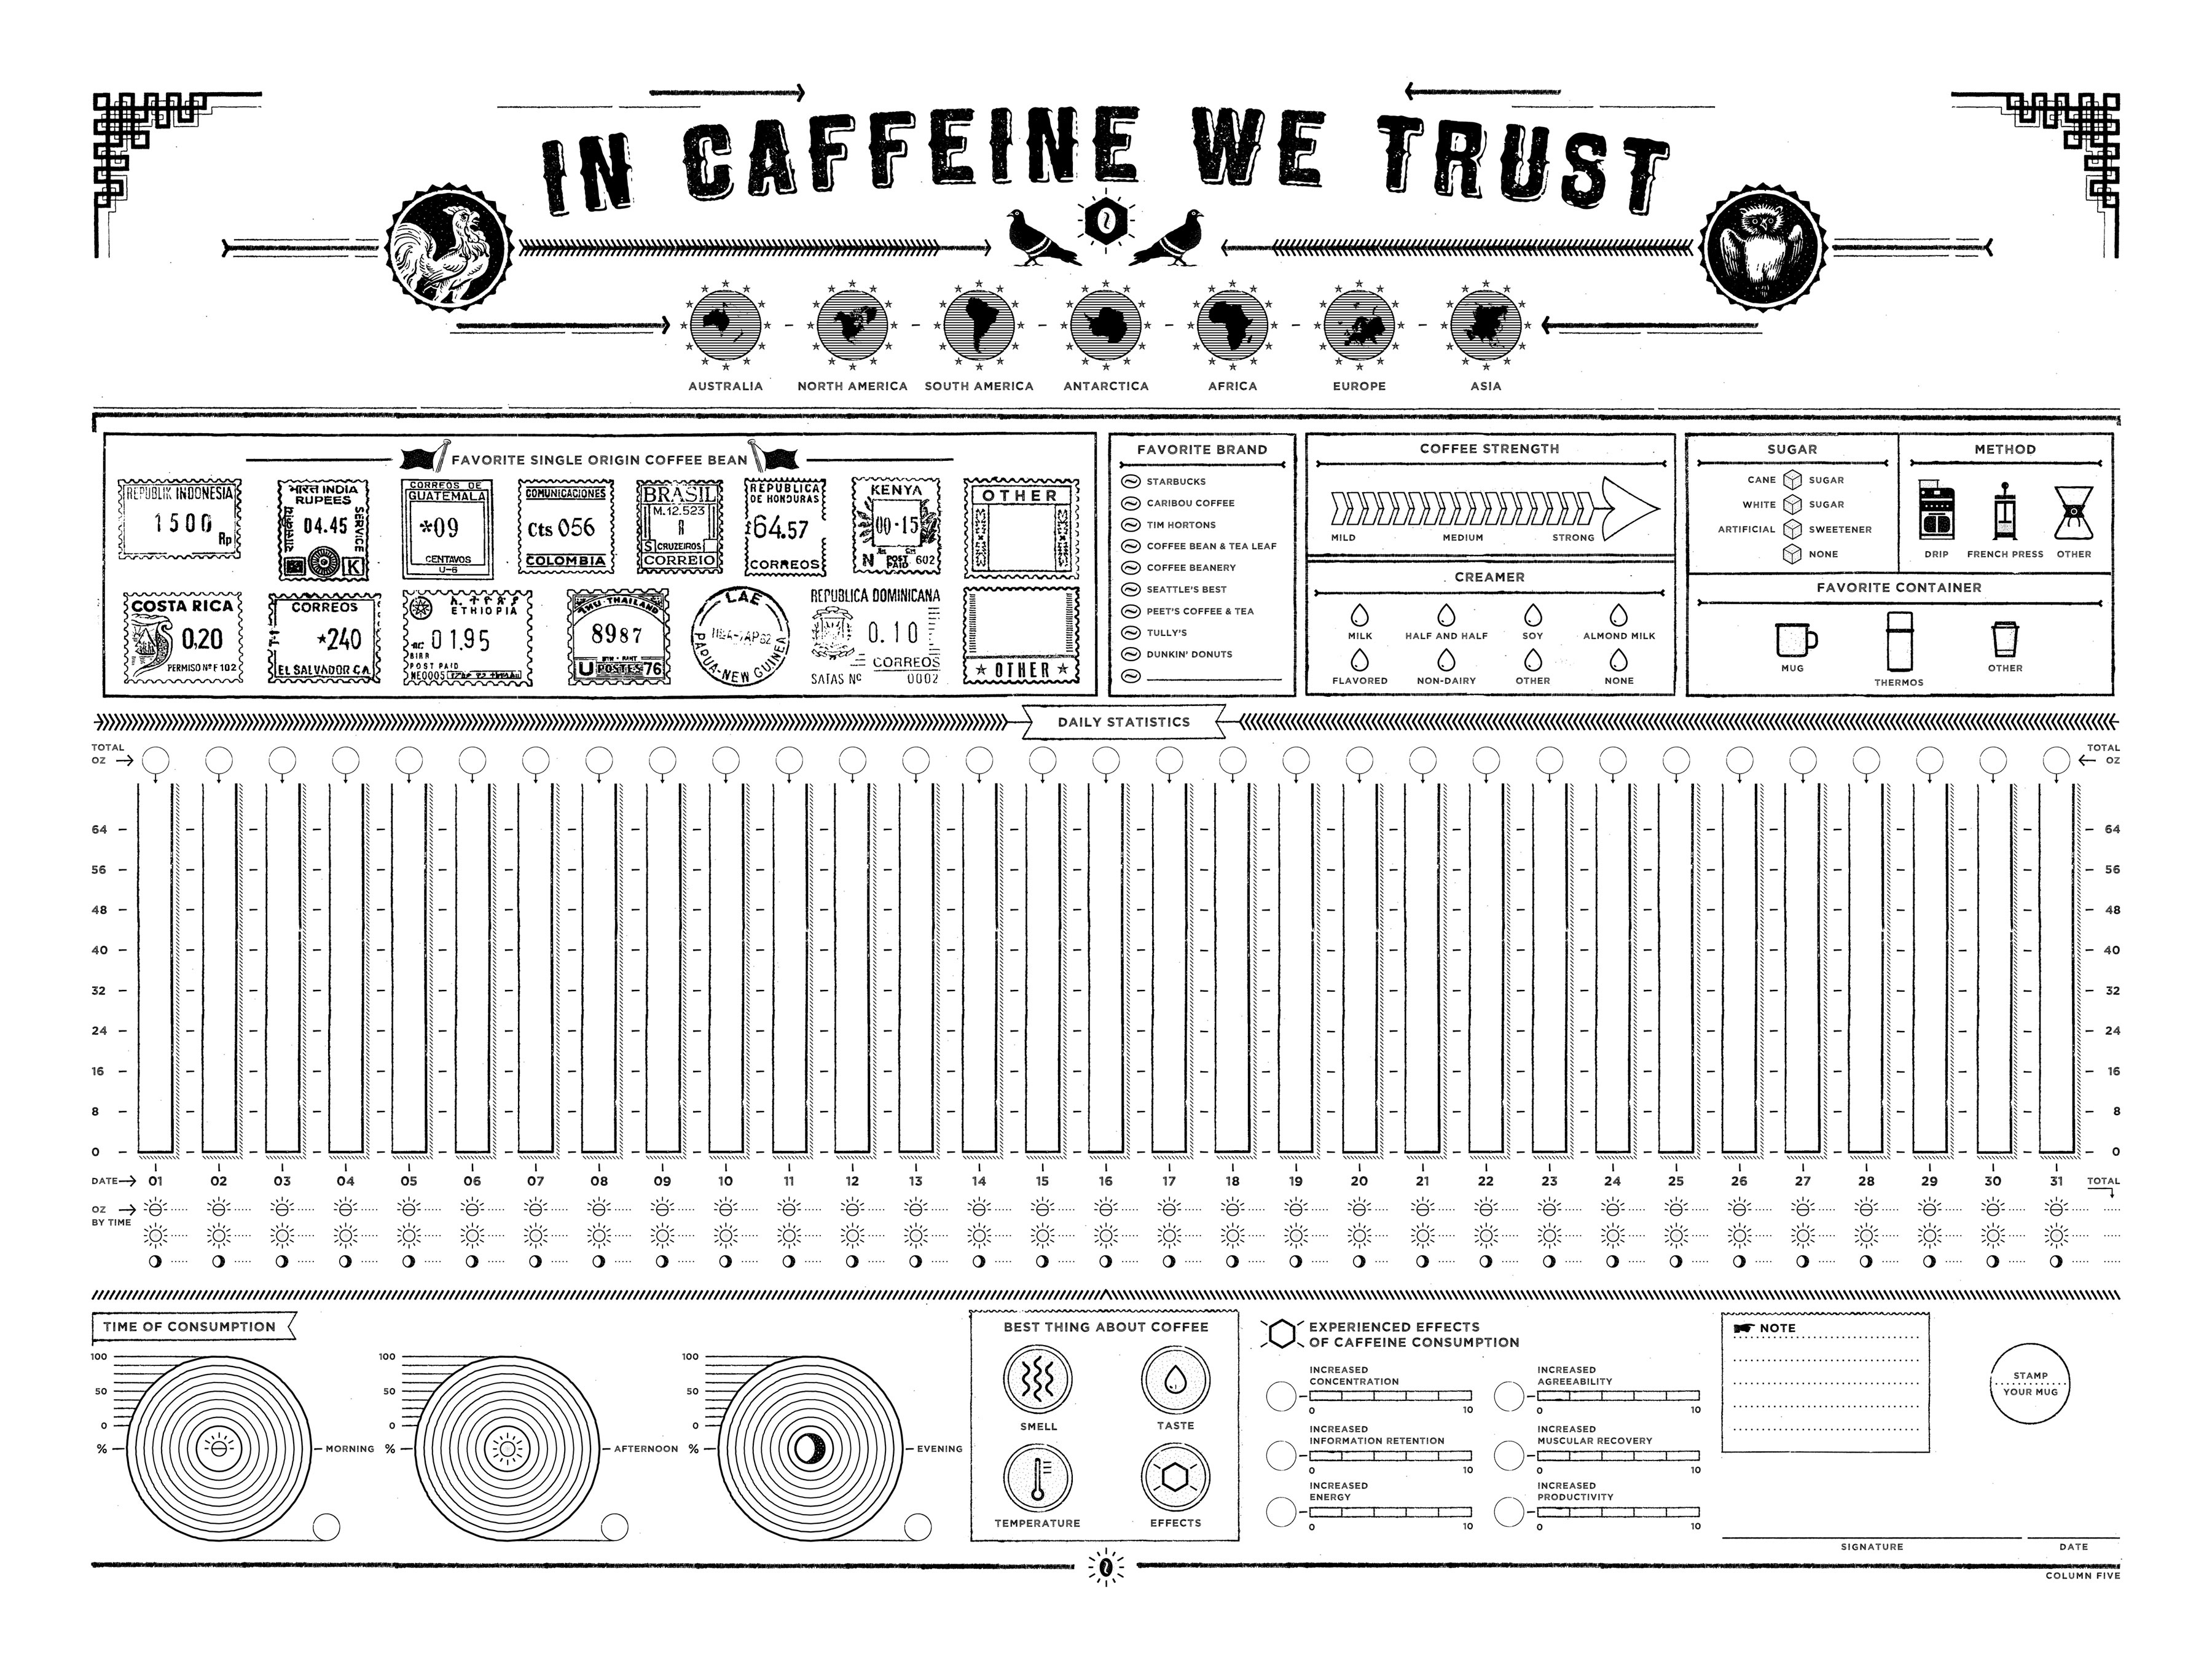 In Caffeine We Trust Infographic Depicts Coffee Consumption